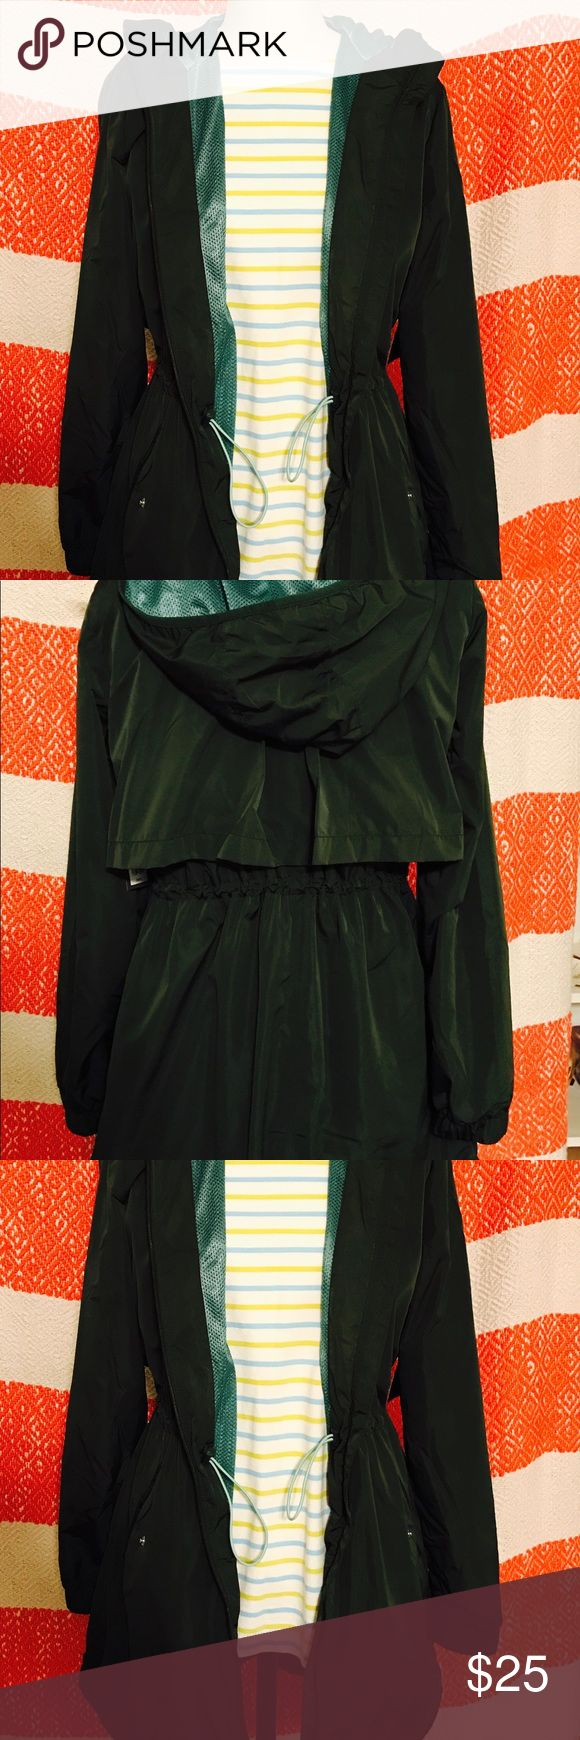 """Women's water resistant jacket. This is one of the cutest jackets I've ever come across! It's the most beautiful green color with a cool """"mesh"""" like inside that is an aqua color. This combo looks great together! It is super flattering on and cinches at the waist. Not only is it cute but super functional! Water resistant and light weight! Perfect for Spring.  Ps- cute shirt underneath not included :( Jackets & Coats"""